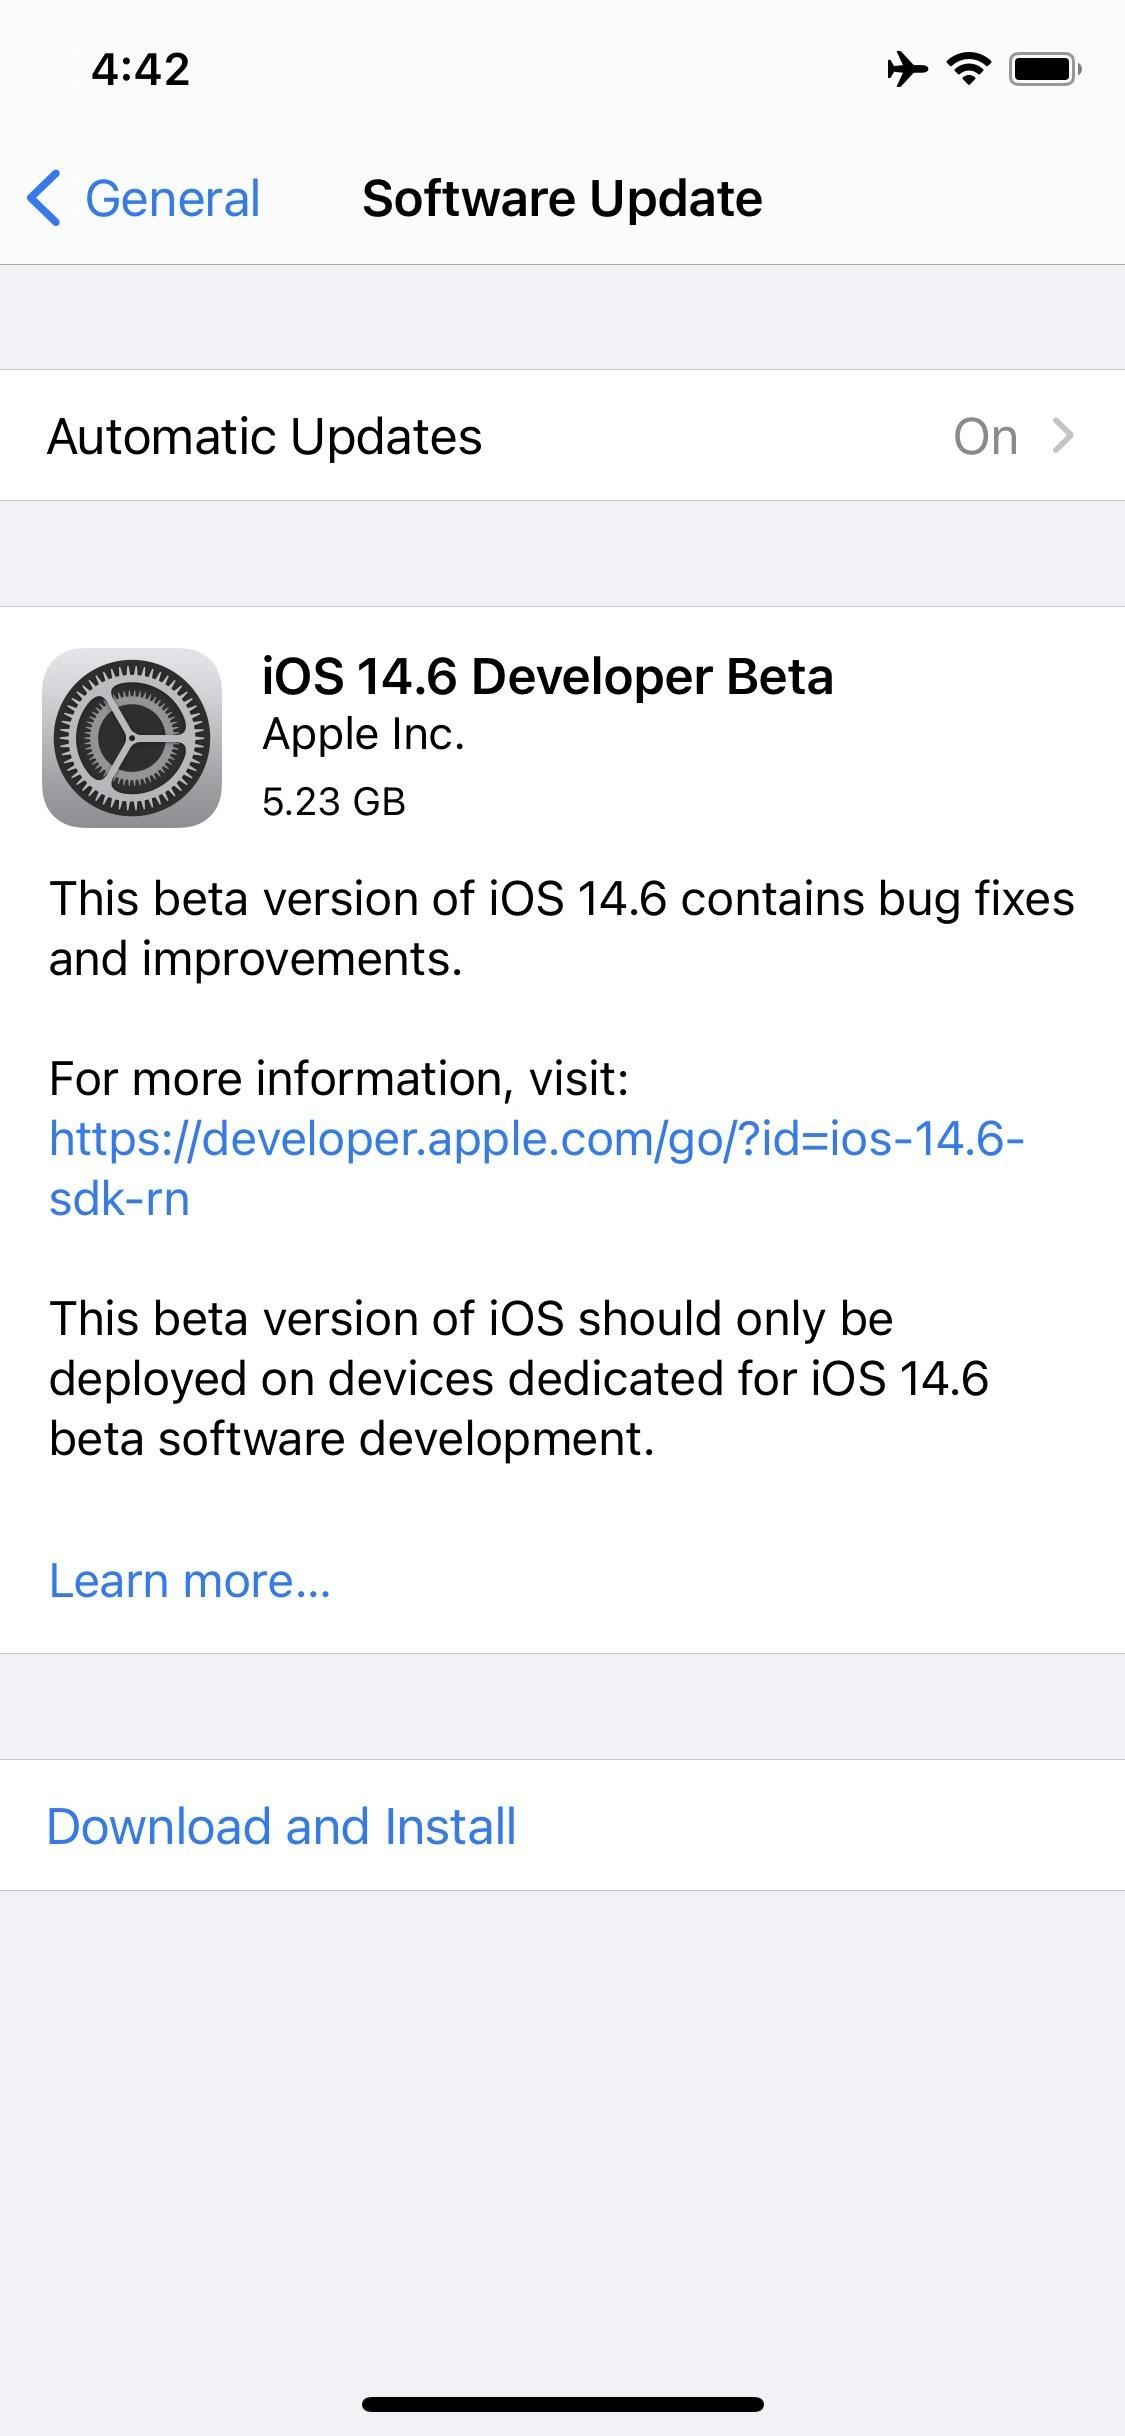 Apple Releases iOS 14.6 Beta 1 for iPhone